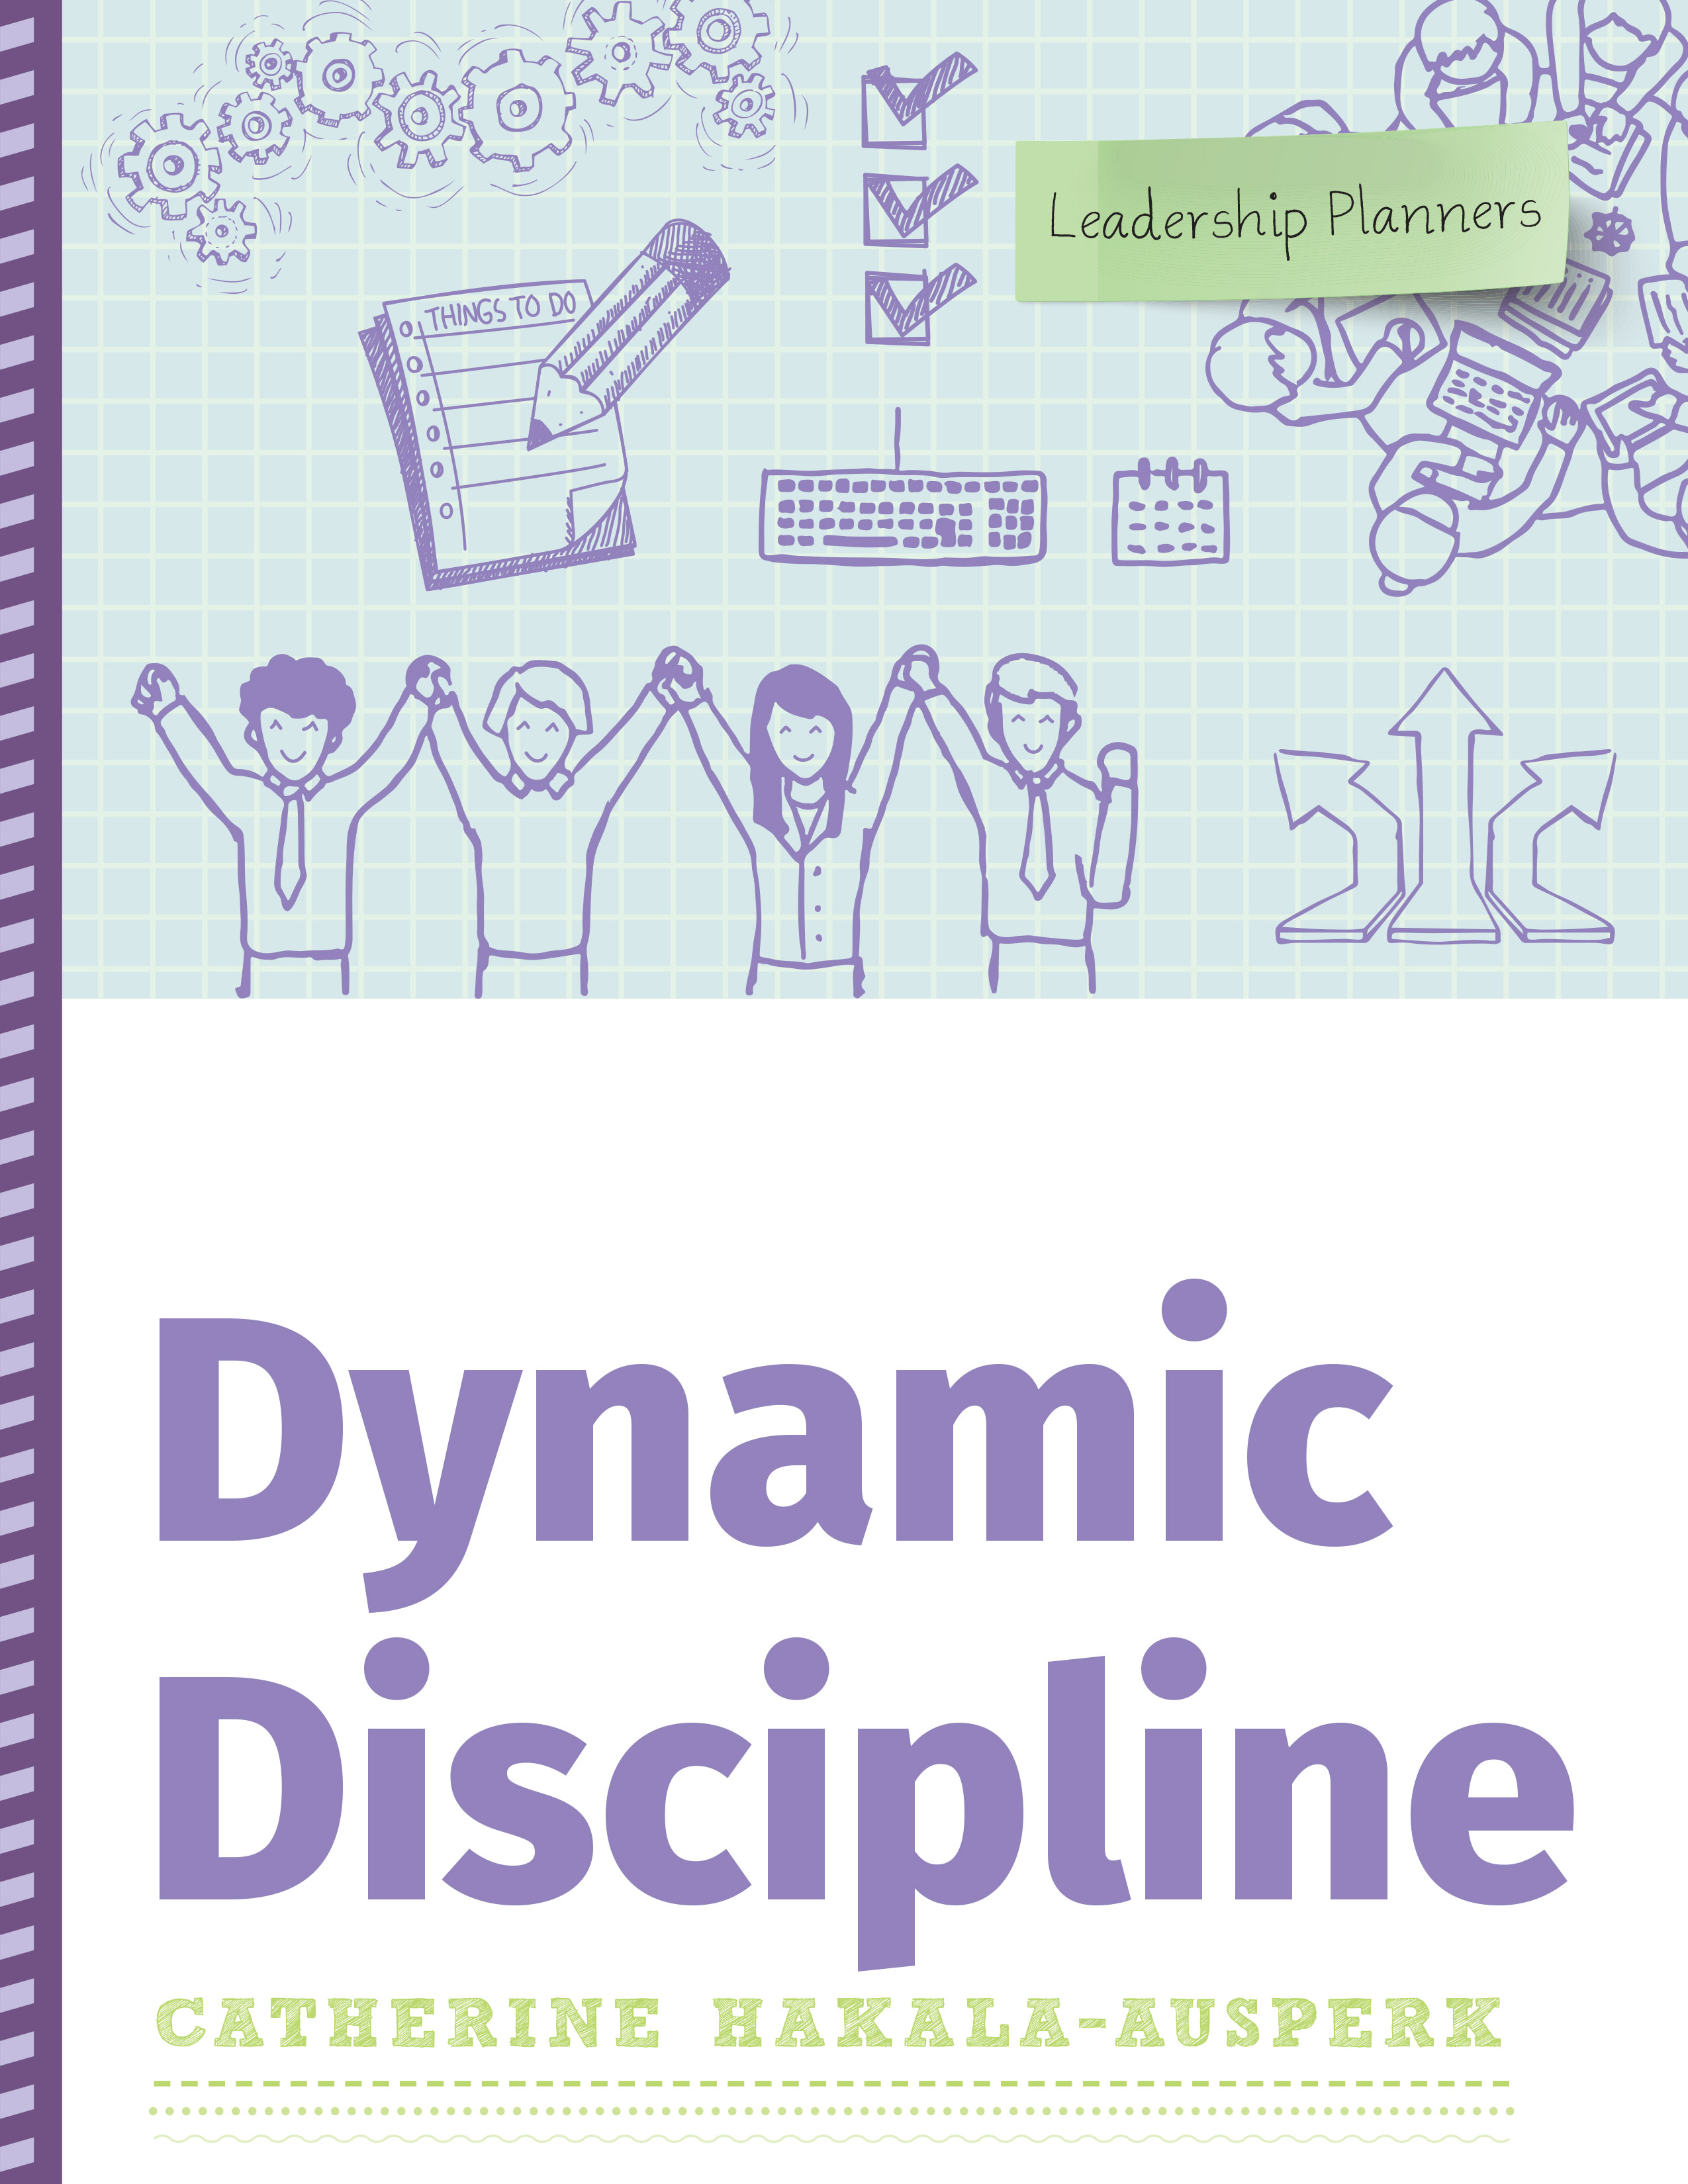 Image for Dynamic Discipline (Leadership Planners Series)